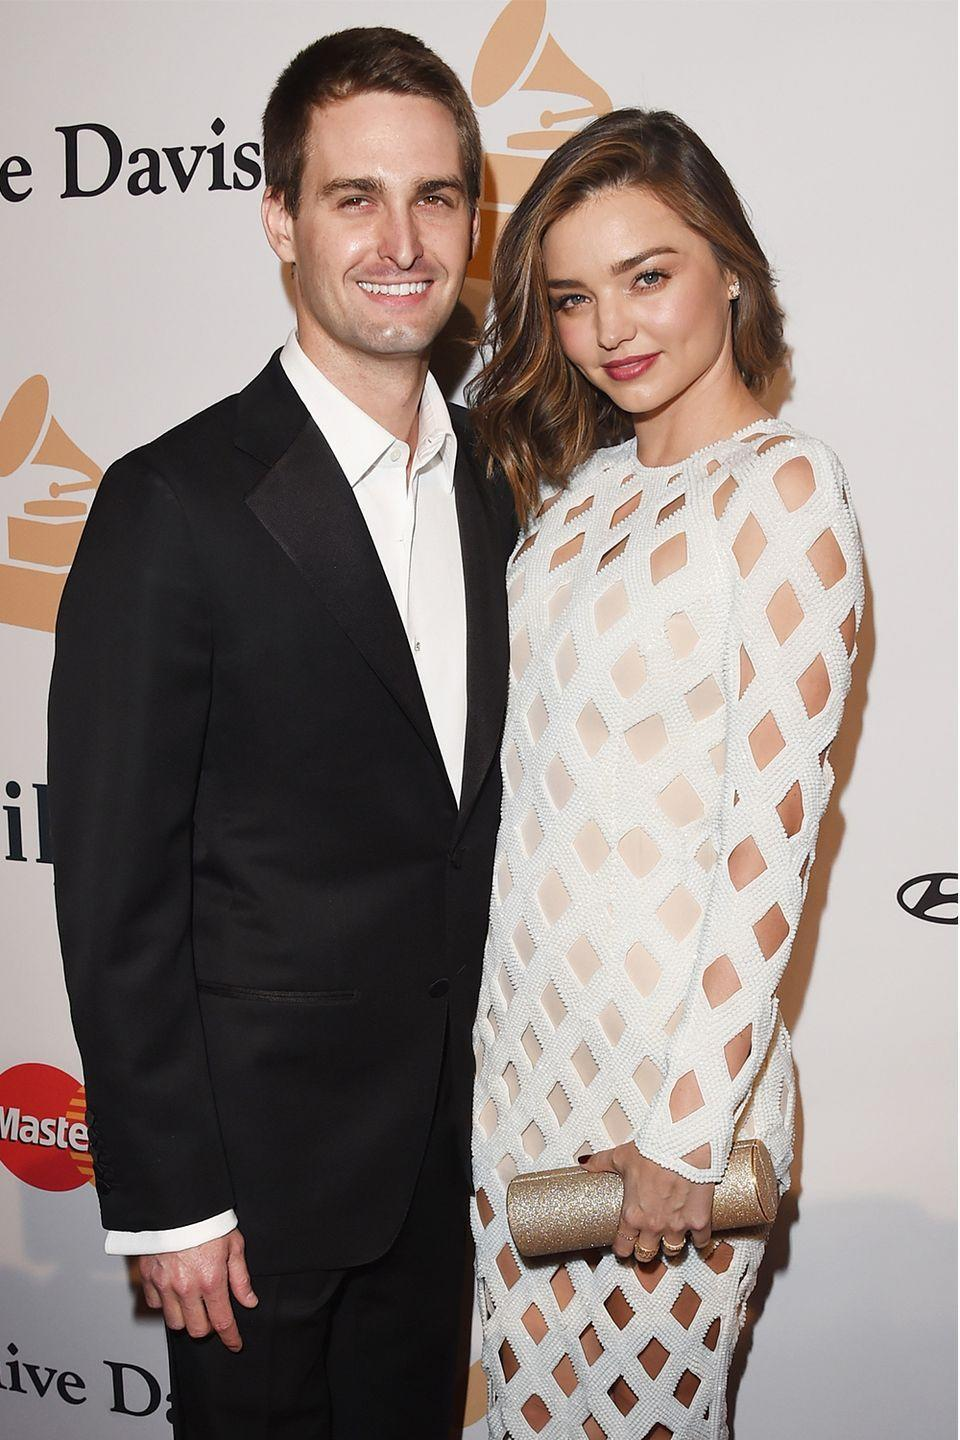 """<p>The Snapchat founder and model revealed they would wait to have sex until after they were married—which was in May 2017. """"Not until after we get married,"""" she told<em> <a href=""""http://www.thetimes.co.uk/article/miranda-kerr-sex-and-the-snapchat-ceo-the-life-of-a-frustrated-supermodel-9z70hhbtc"""" rel=""""nofollow noopener"""" target=""""_blank"""" data-ylk=""""slk:The London Times"""" class=""""link rapid-noclick-resp"""">The London Times</a></em>. """"[Evan] is very traditional. We can't…I mean we're just…waiting.""""</p><p>Shortly after they were married, Miranda announced she was pregnant. Miranda has a son, Flynn, with Orlando Bloom, but it's unclear if Evan remained a virgin until his marriage to Miranda. </p>"""